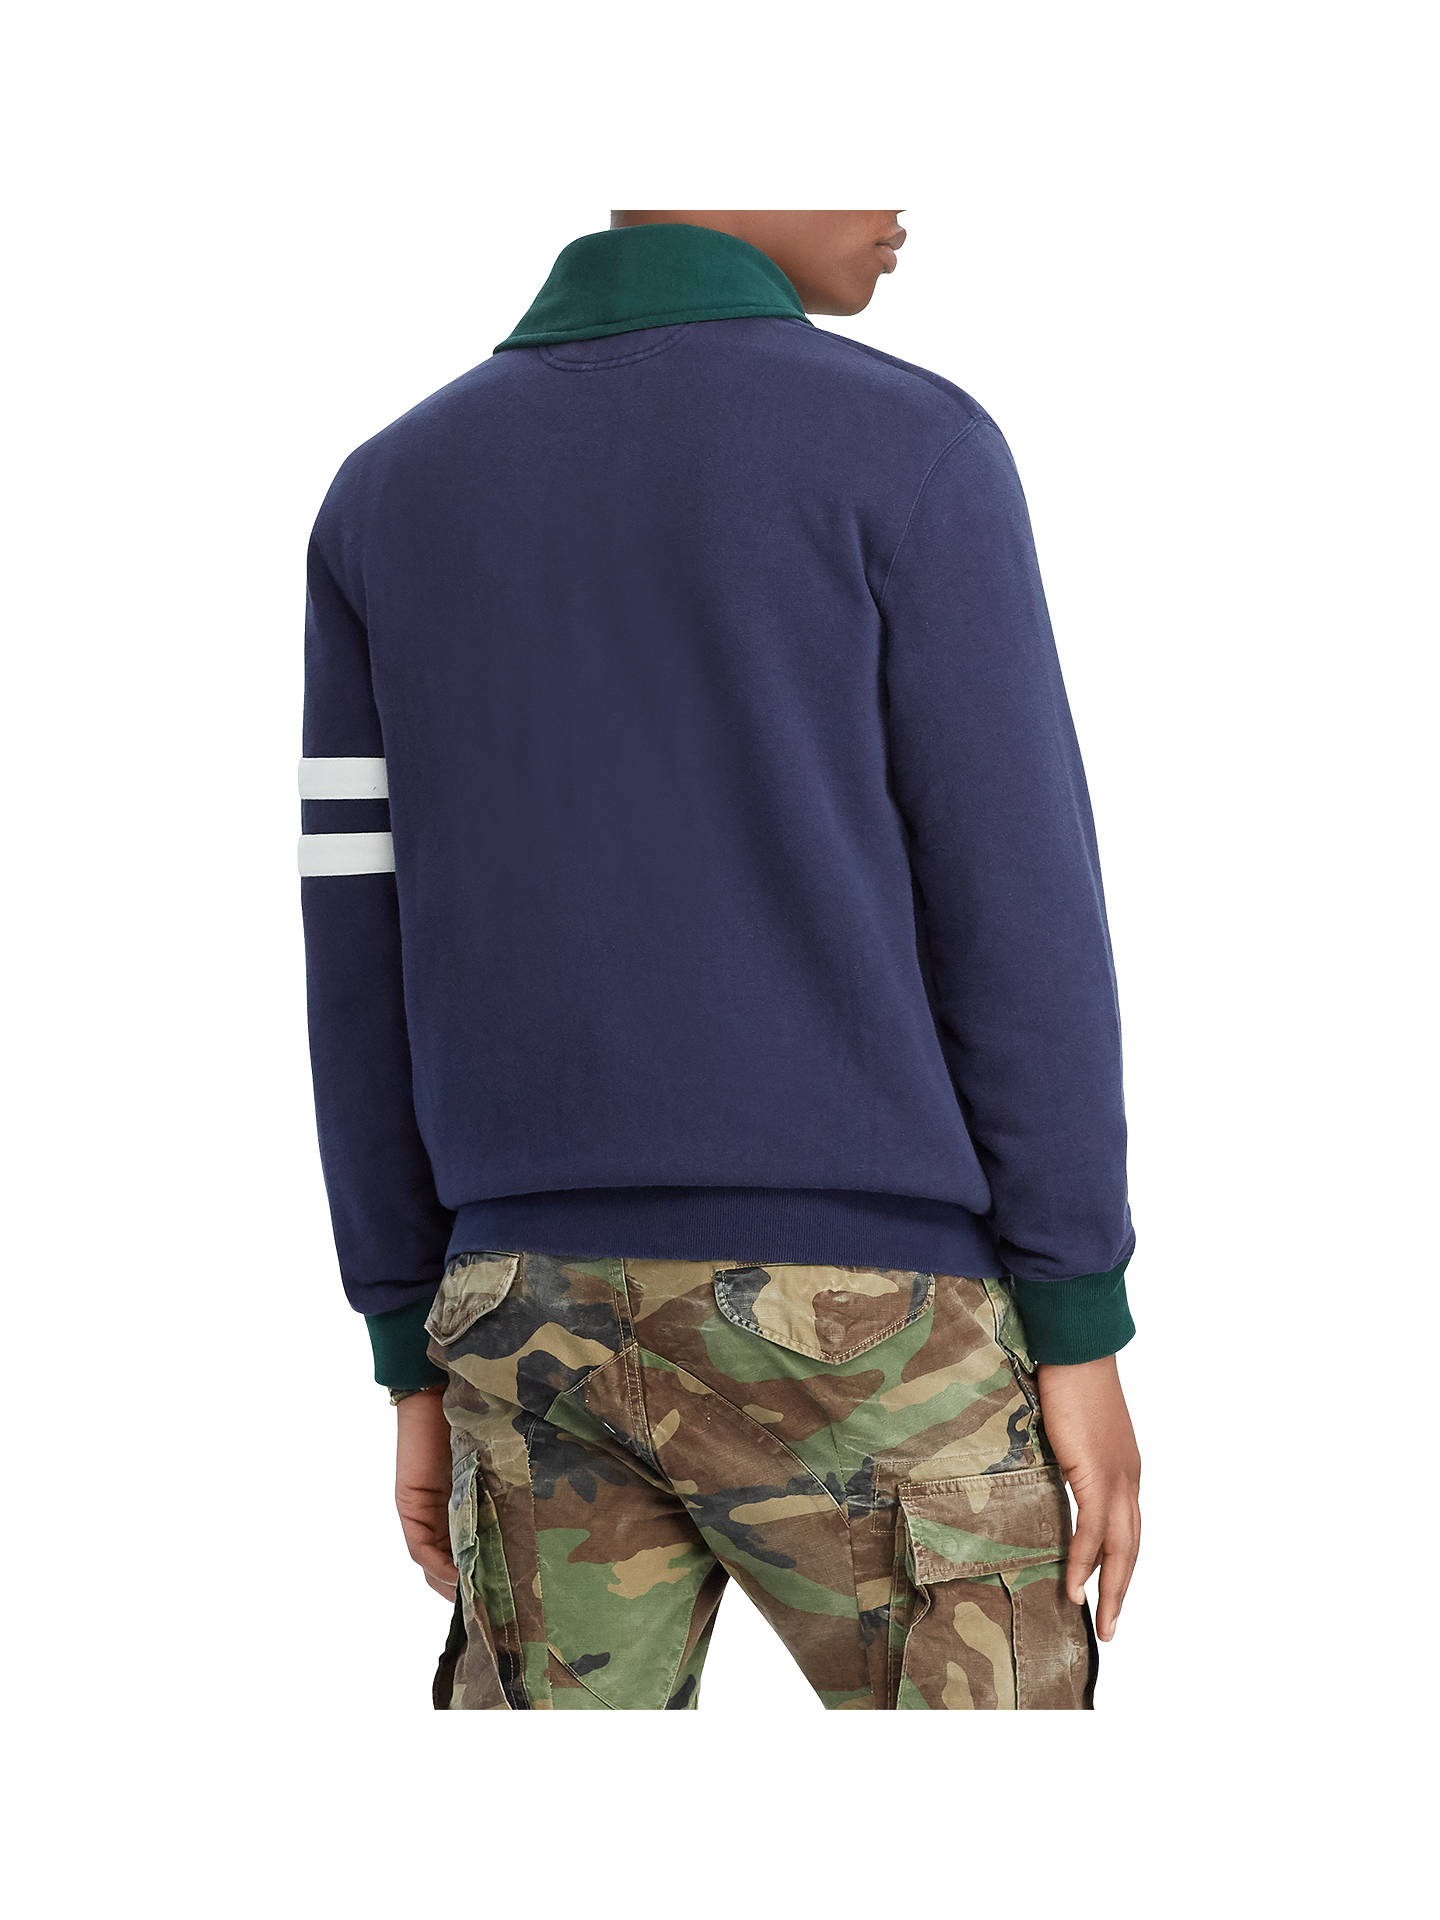 BuyPolo Ralph Lauren Jersey Cardigan, Cruise Navy, M Online at johnlewis.com